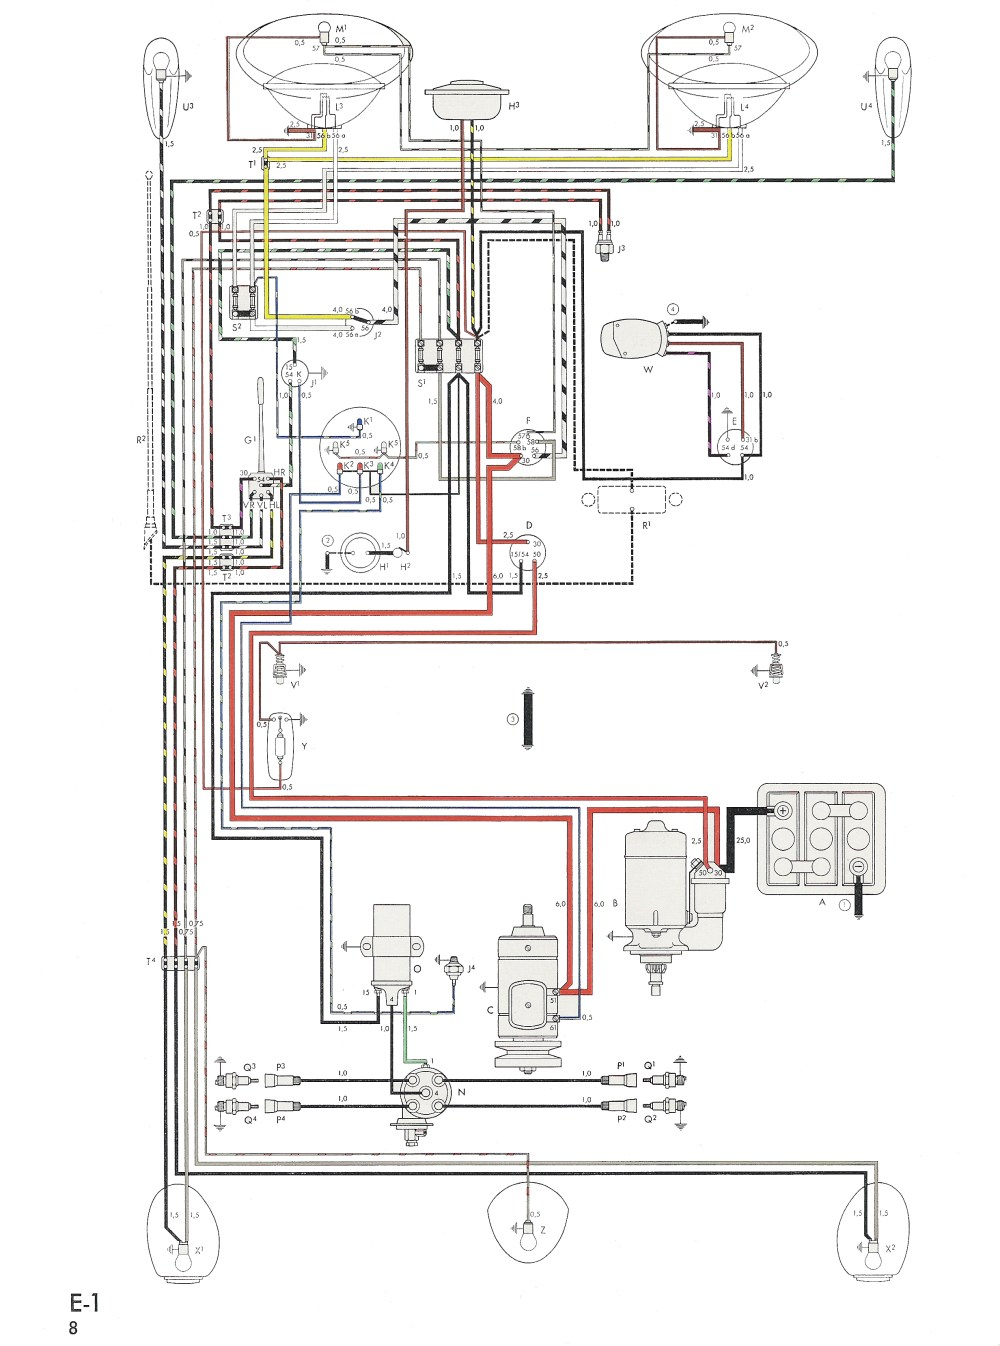 medium resolution of 58 vw alternator wiring data wiring diagram schema rh 50 diehoehle derloewen de vw generator to alternator conversion vw generator to alternator conversion